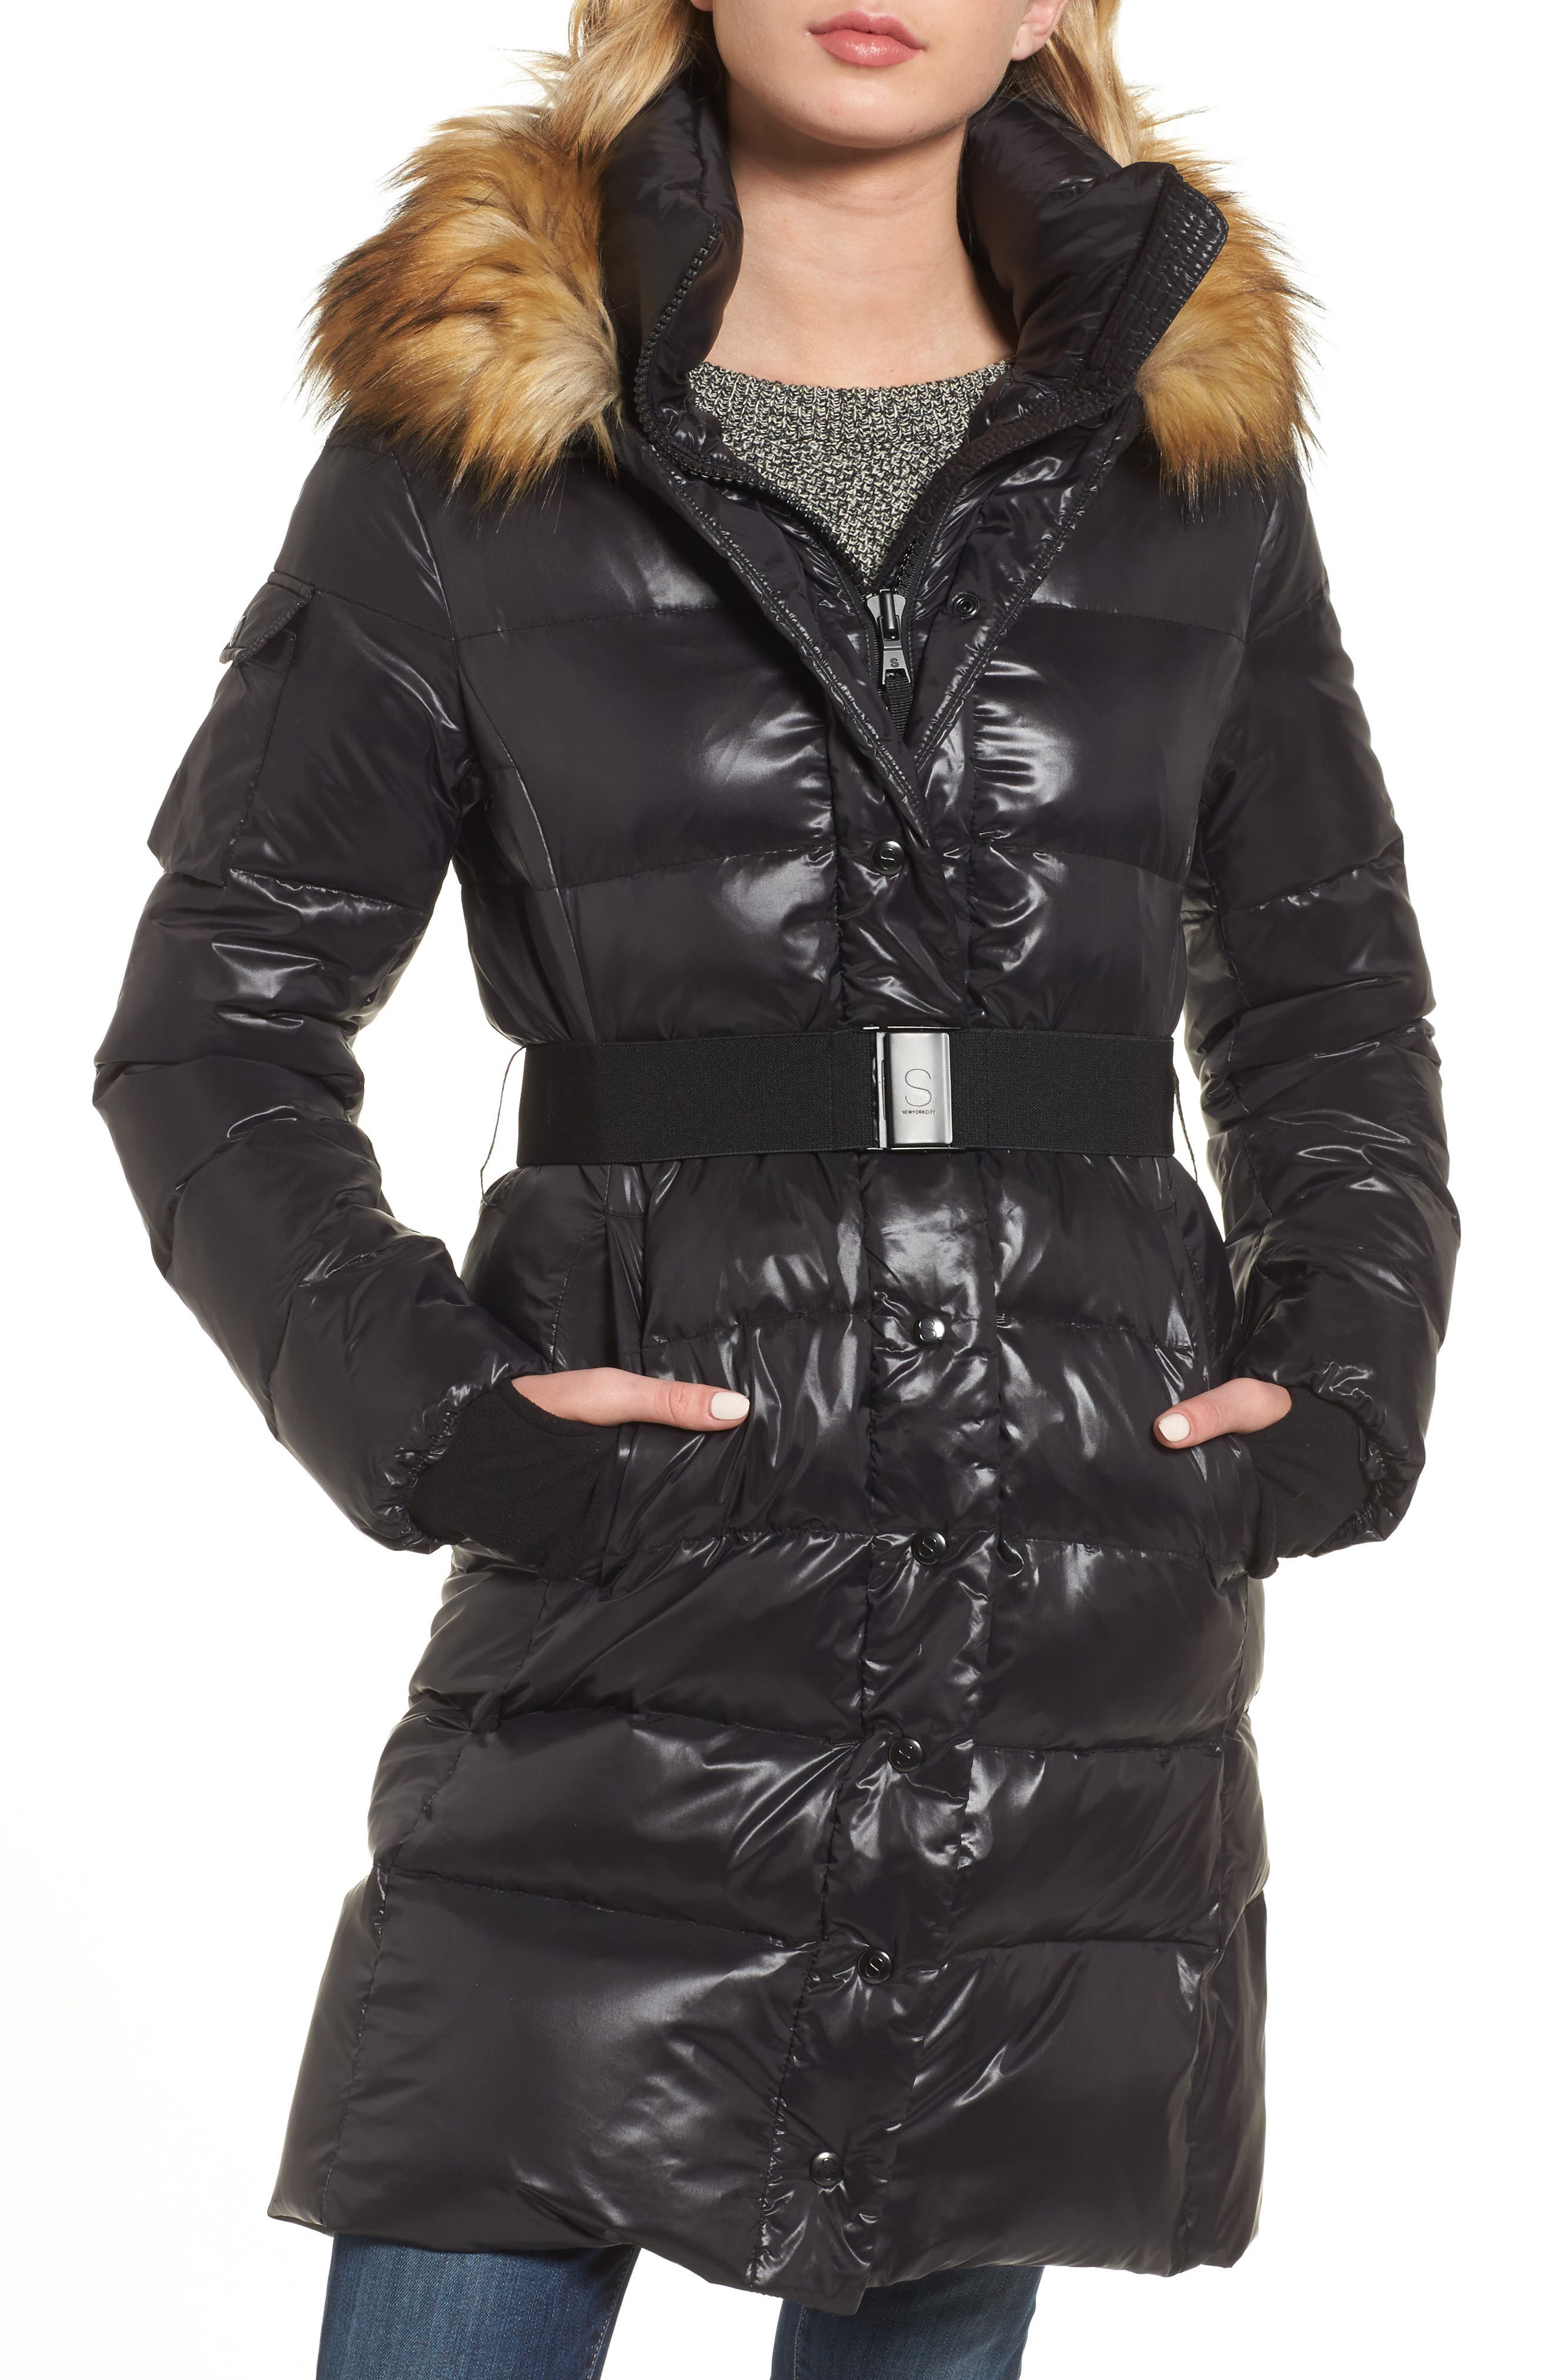 S13 Chalet Hooded Puffer Coat with Faux Fur Trim